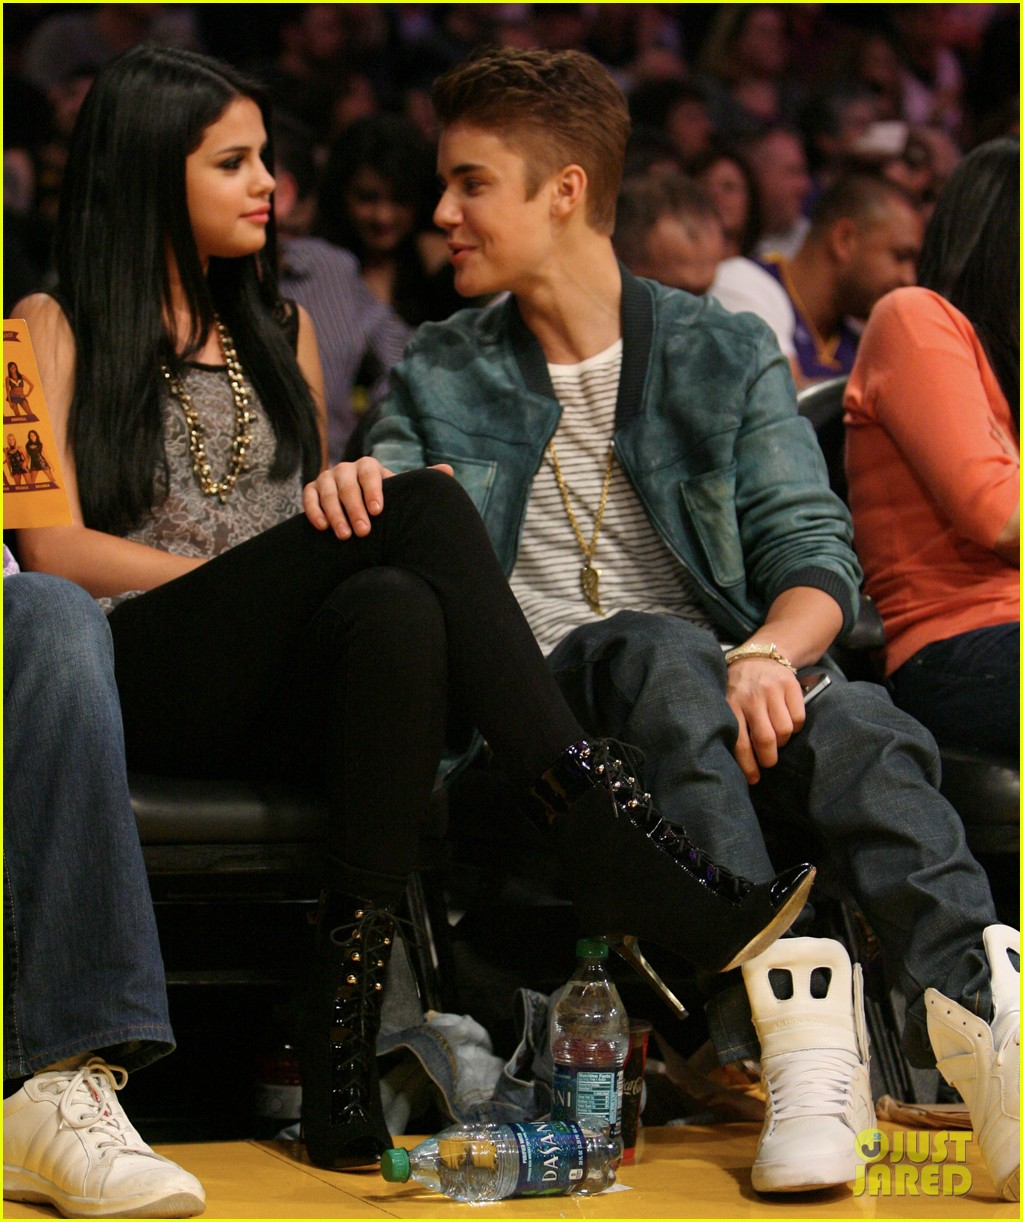 Selena gomez dating justin bieber games